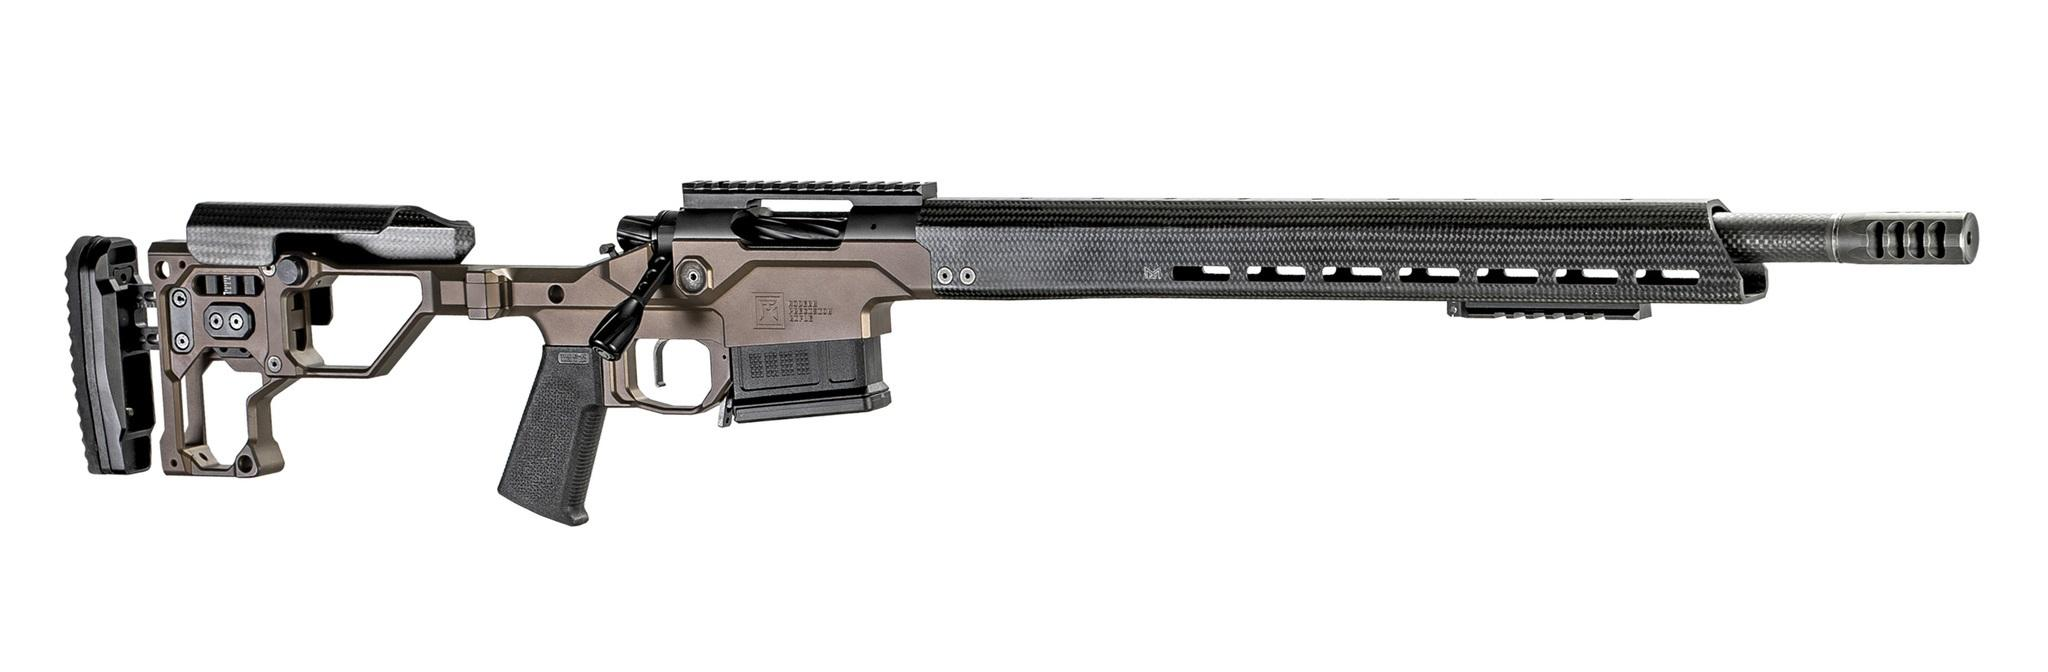 MPR 6.5PRC CHASSIS BRWN 24 MB - 801-03013-00